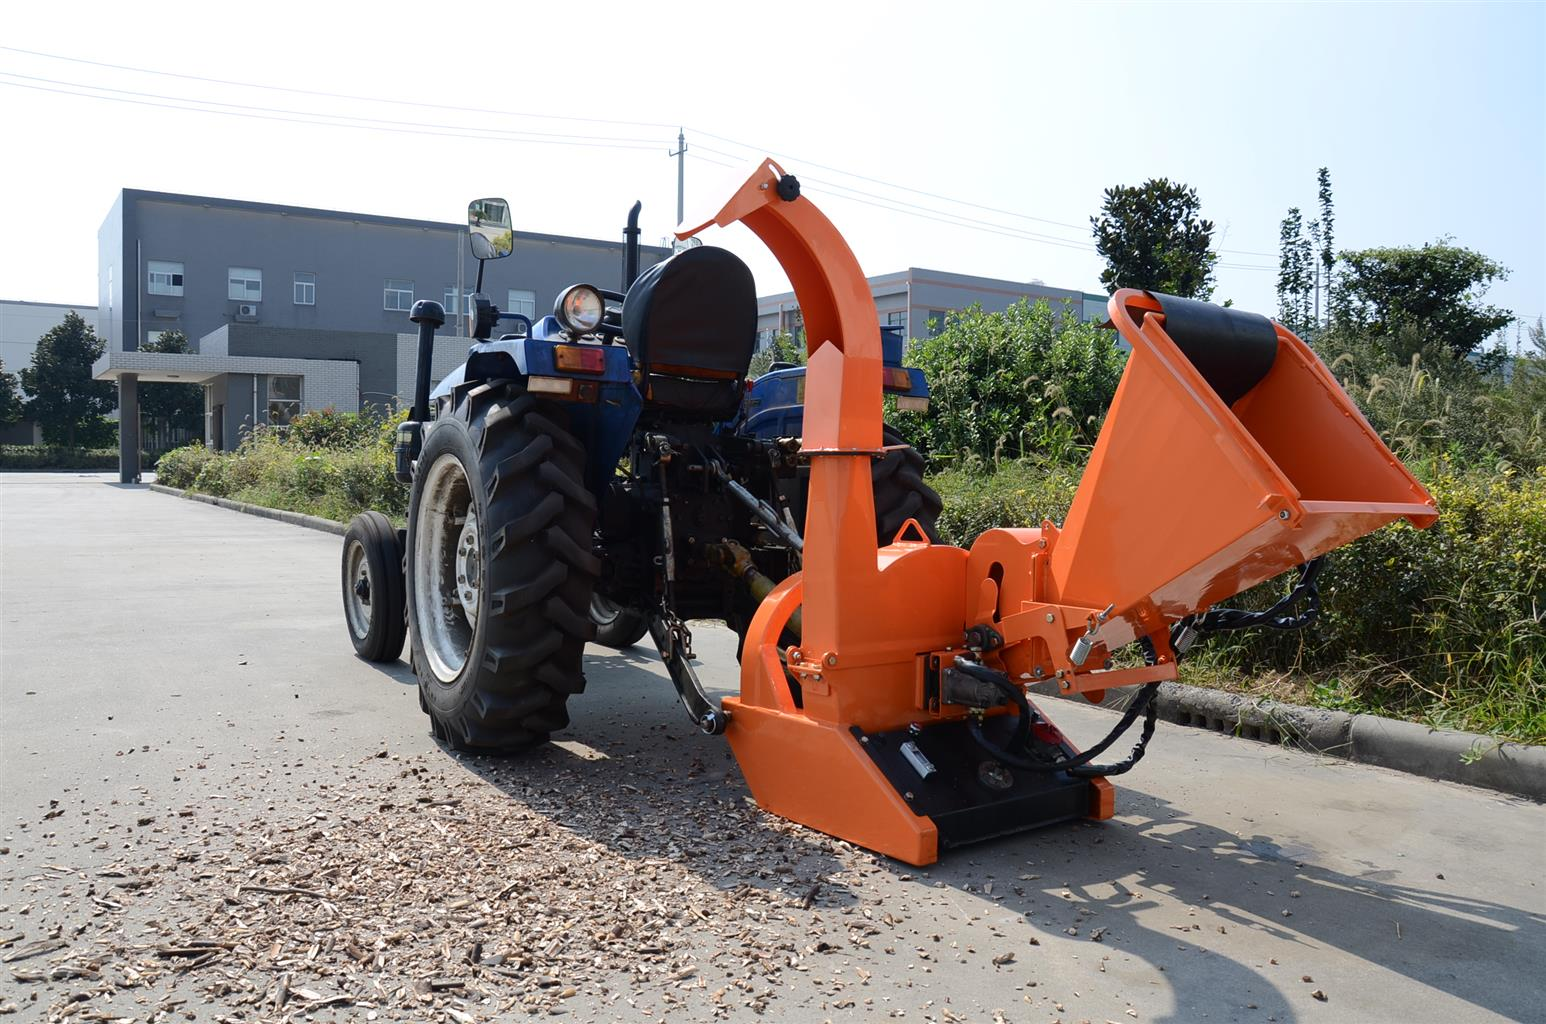 The motor is powered by the chippers' self-contained hydraulic pump and tank.